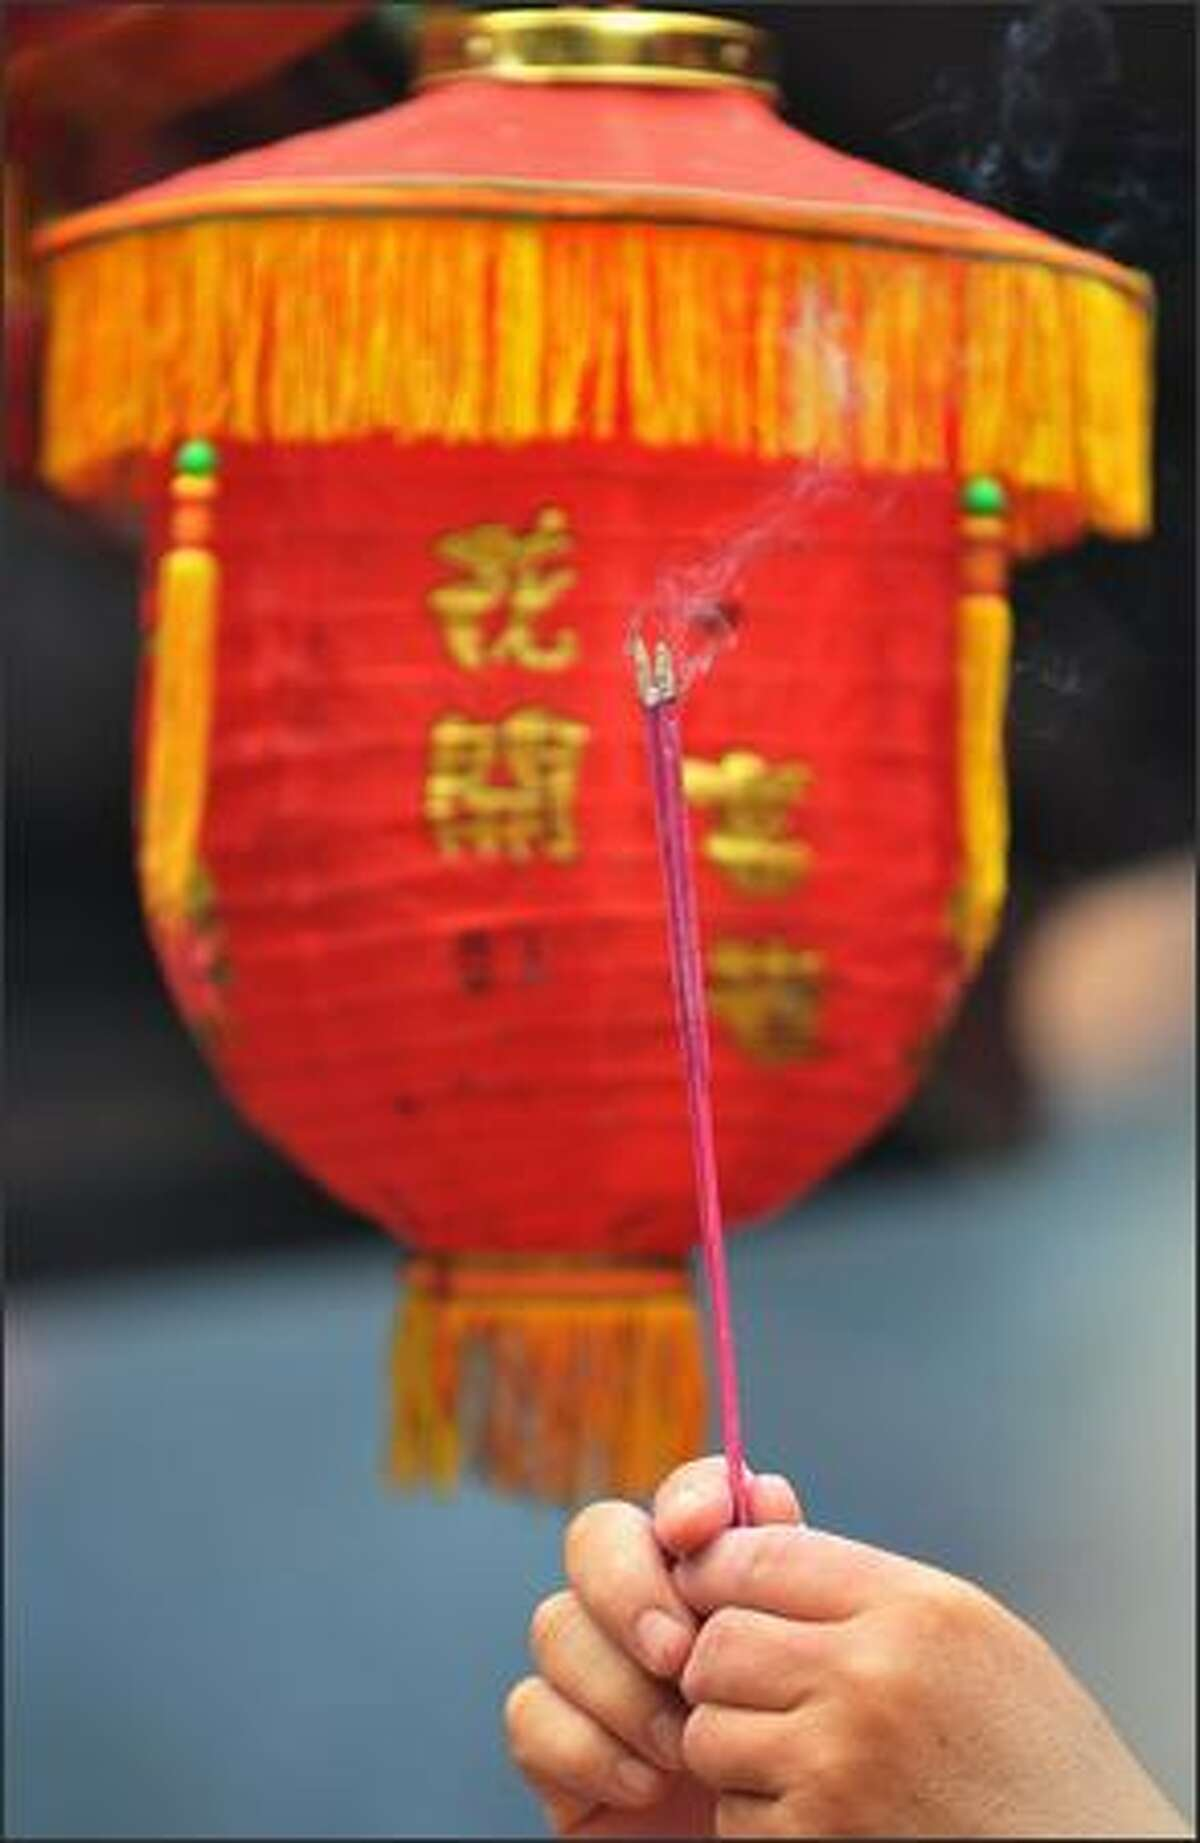 A worshipper holds incense sticks in front of a lantern during Chinese Lunar New Year prayers in Jakarta.